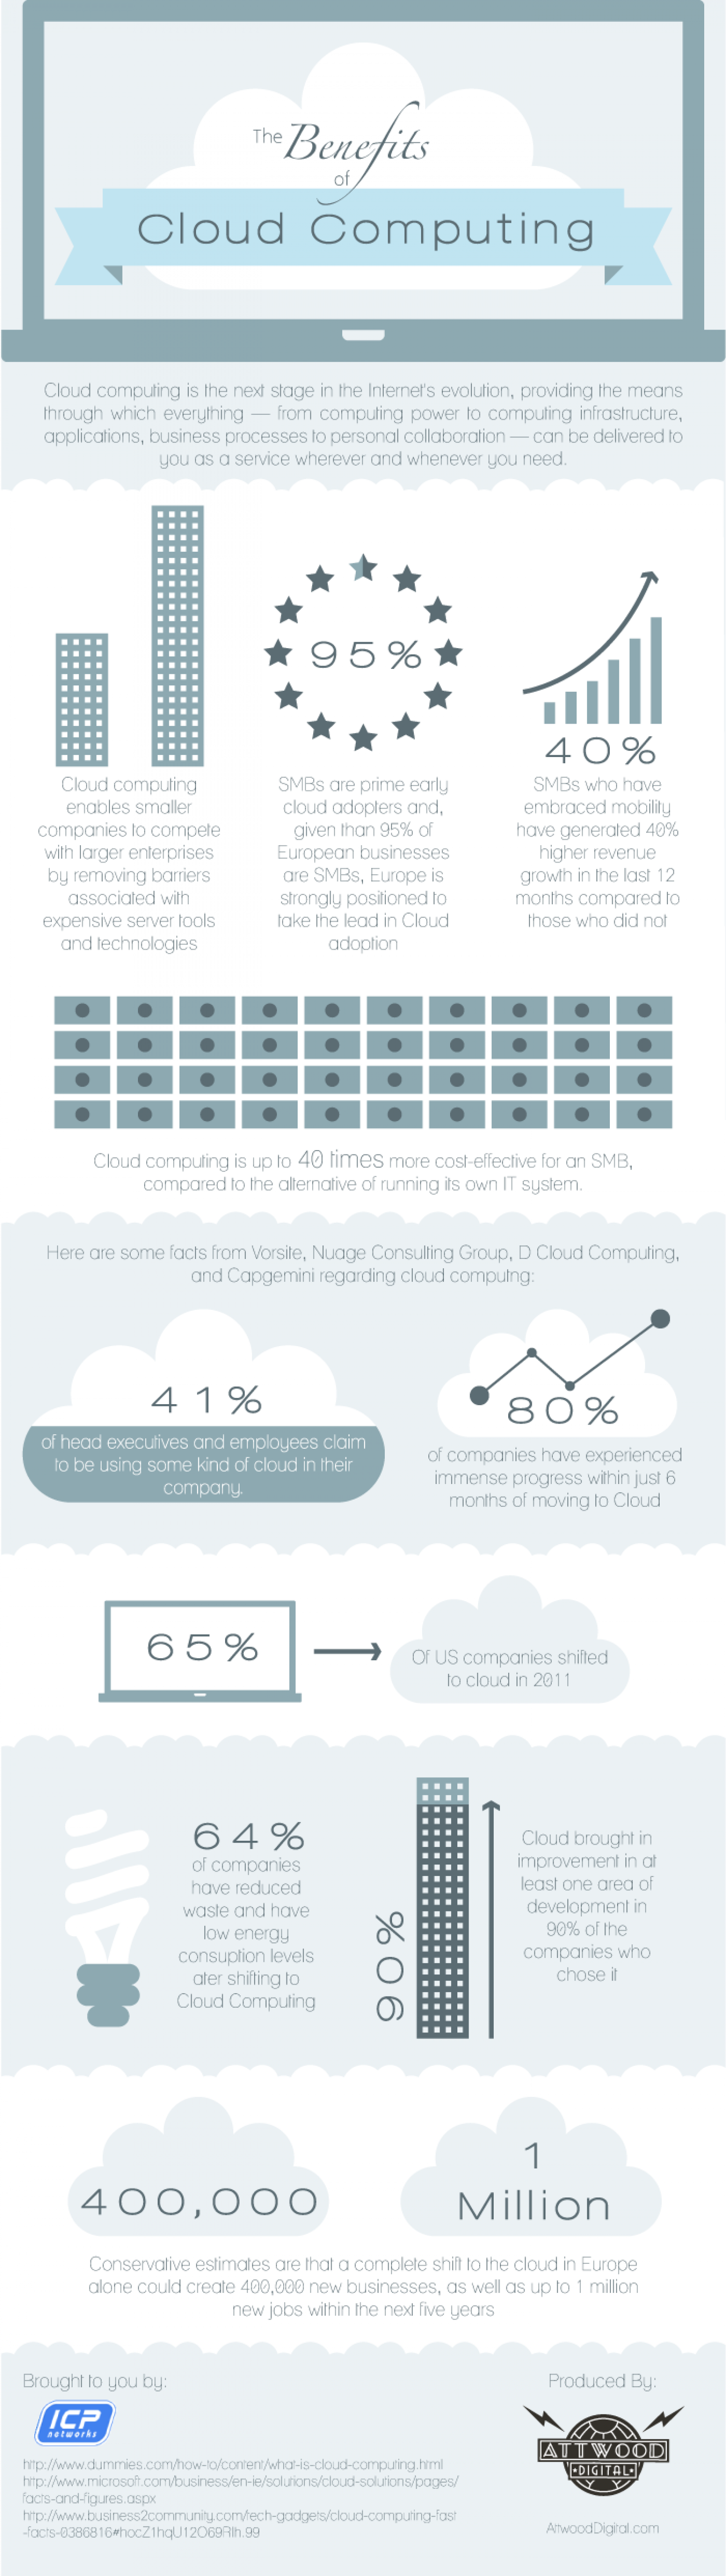 Cloud Computing and the Benefits  Infographic